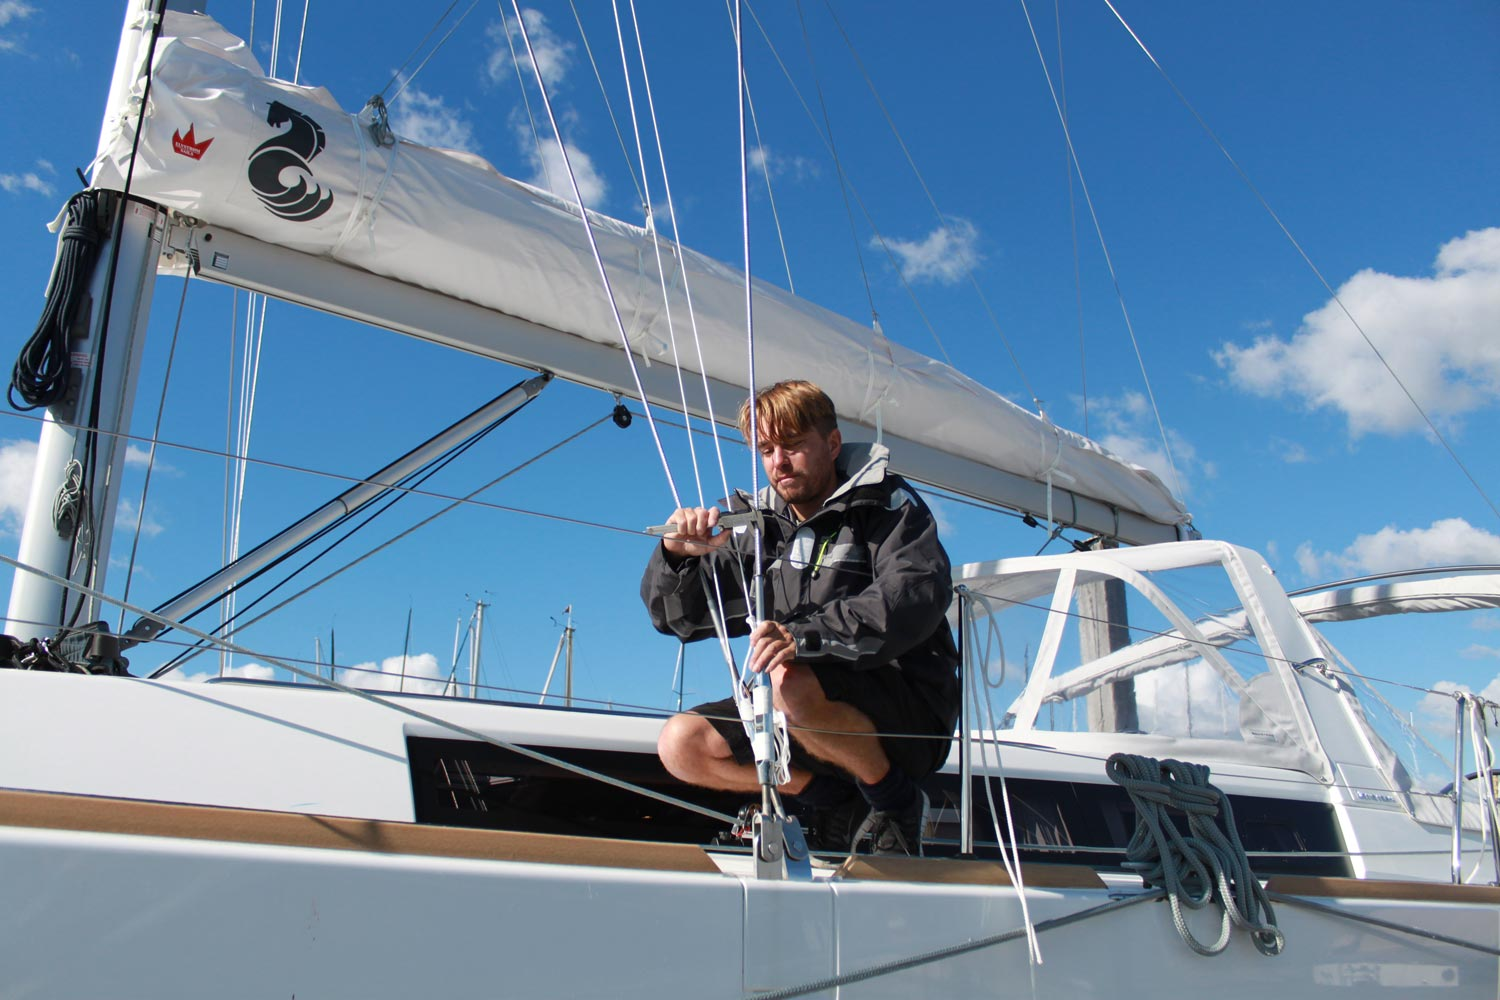 Advanced Rigging Yacht Rigging Services Amp Rigging